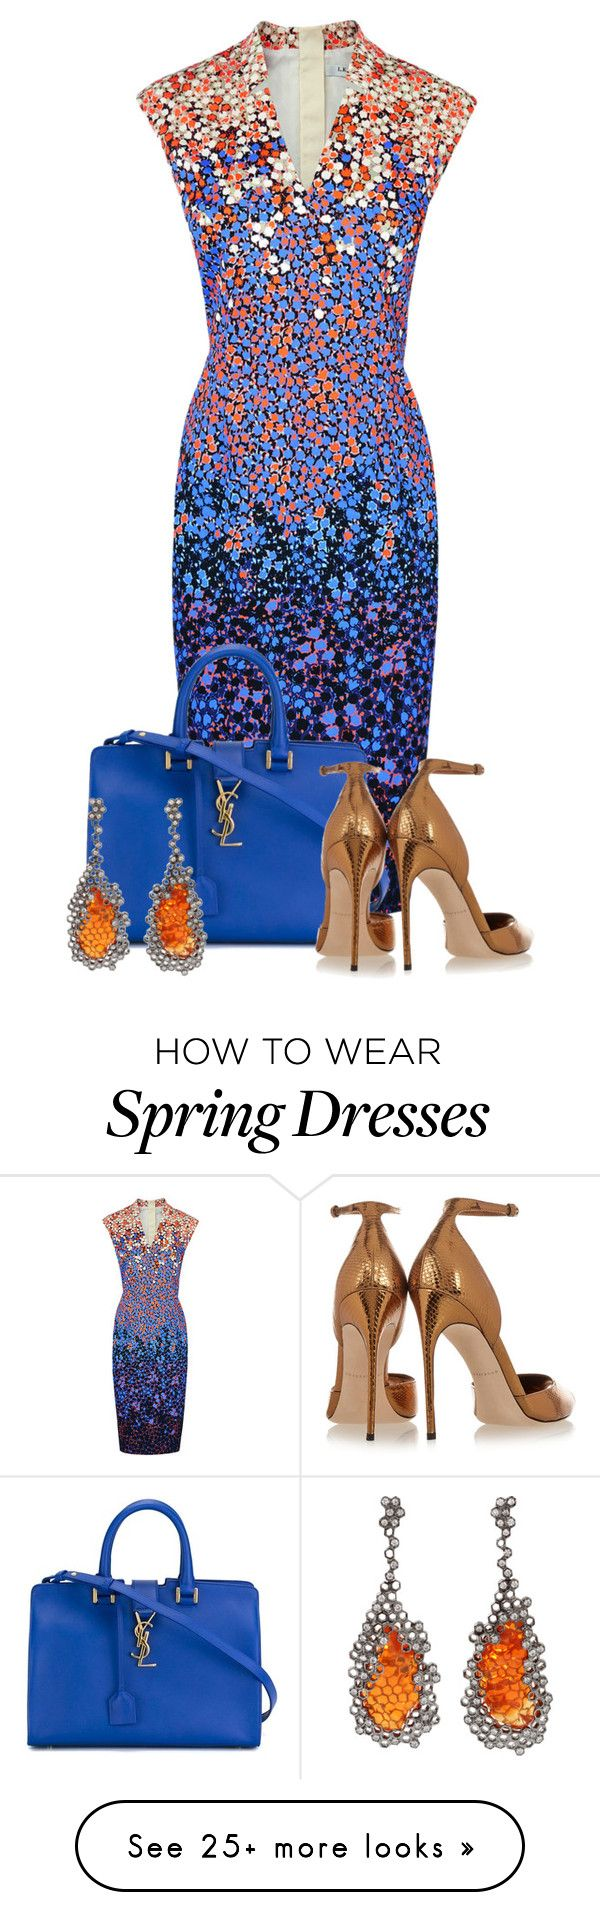 """Romantic Spring"" by tjinwa on Polyvore featuring L.K.Bennett, Yves Saint Laurent, Arunashi, Brian Atwood, women's clothing, women, female, woman, misses and juniors"